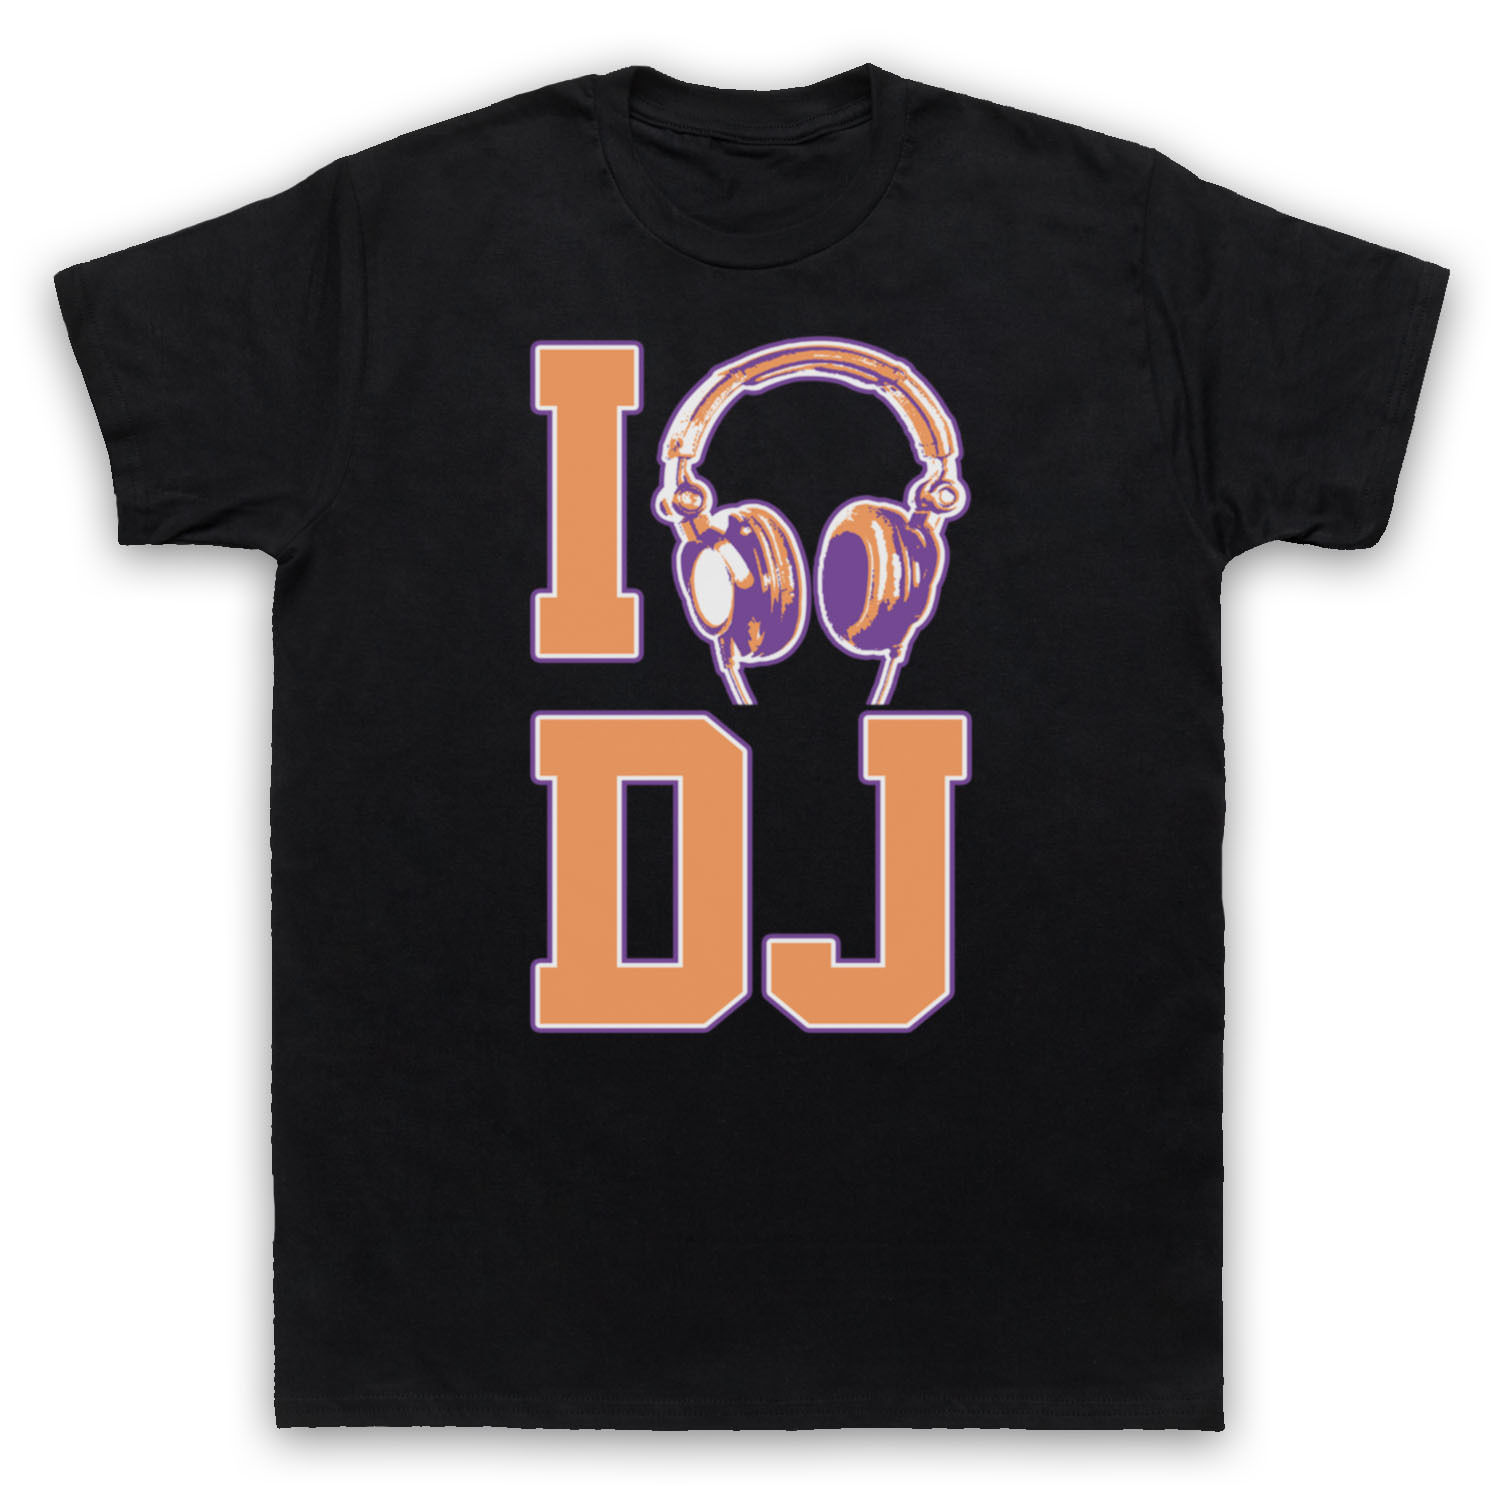 I Love DJ Rave Dance Edm Hip Hop House Music Retro Slogan T-shirt Men's Cotton Short Sleeve Tees Unique Branded Gift Tee image